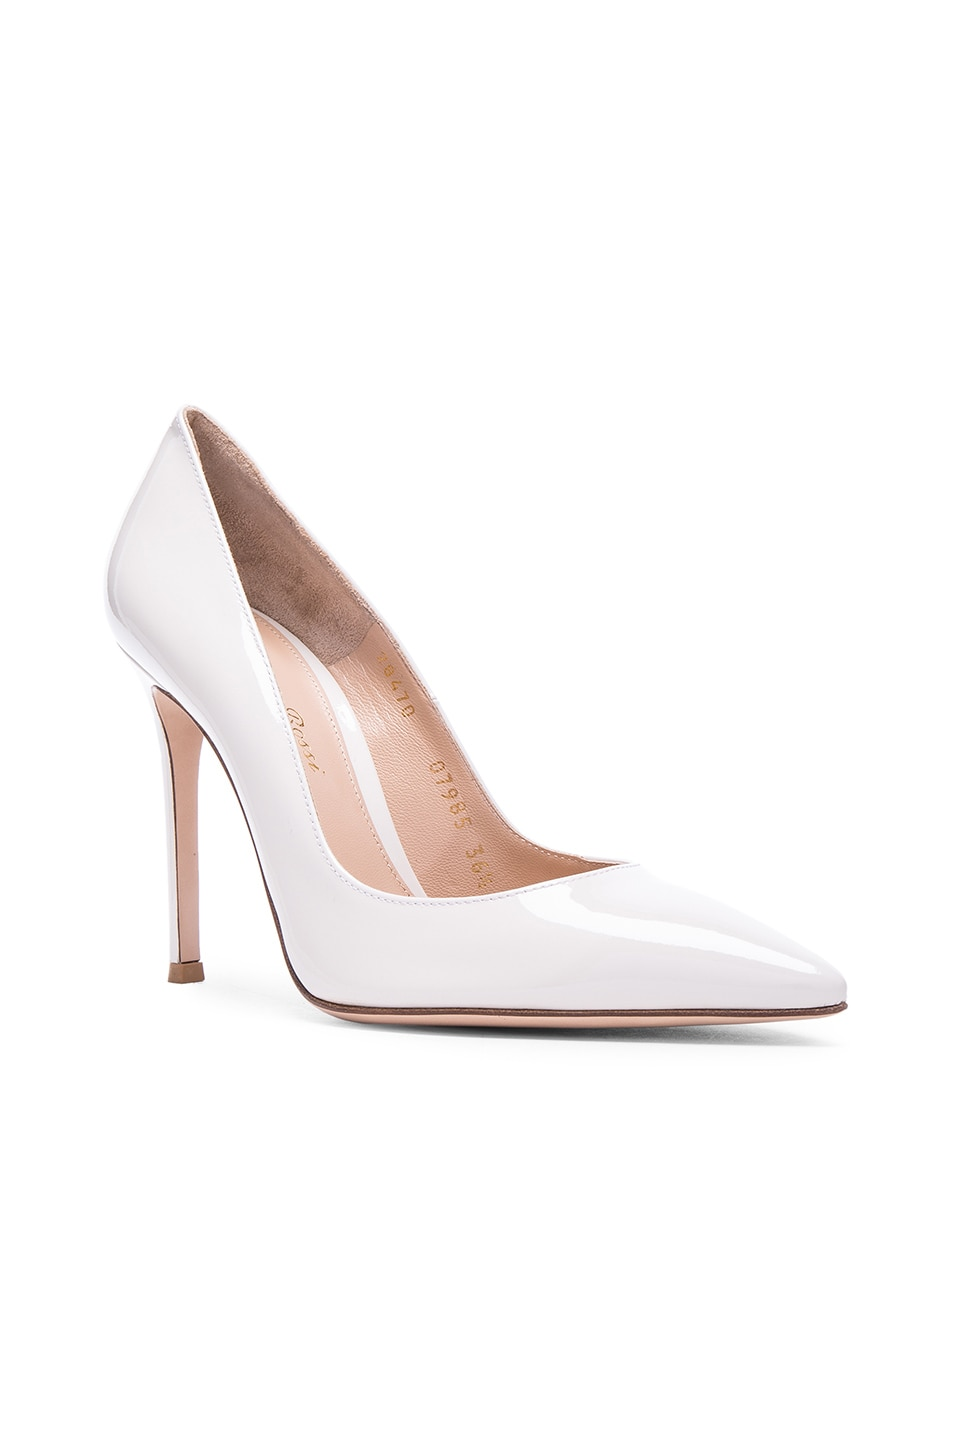 Image 2 of Gianvito Rossi Patent Leather Gianvito Pumps in Off White